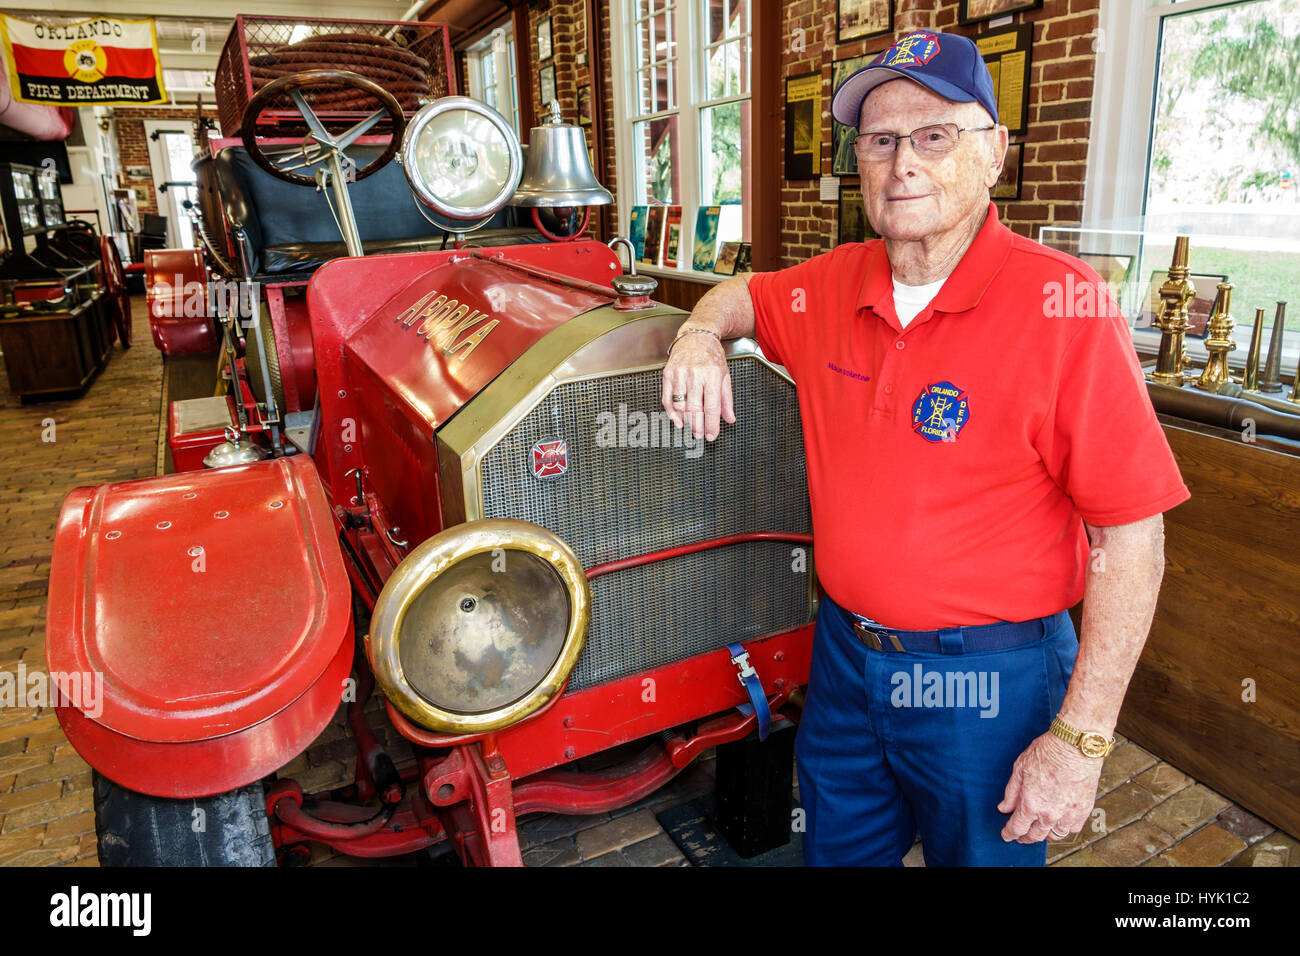 Orlando Florida Loch Haven Park cultural park Orlando Fire Museum firehouse interior man senior retired firefighter - Stock Image